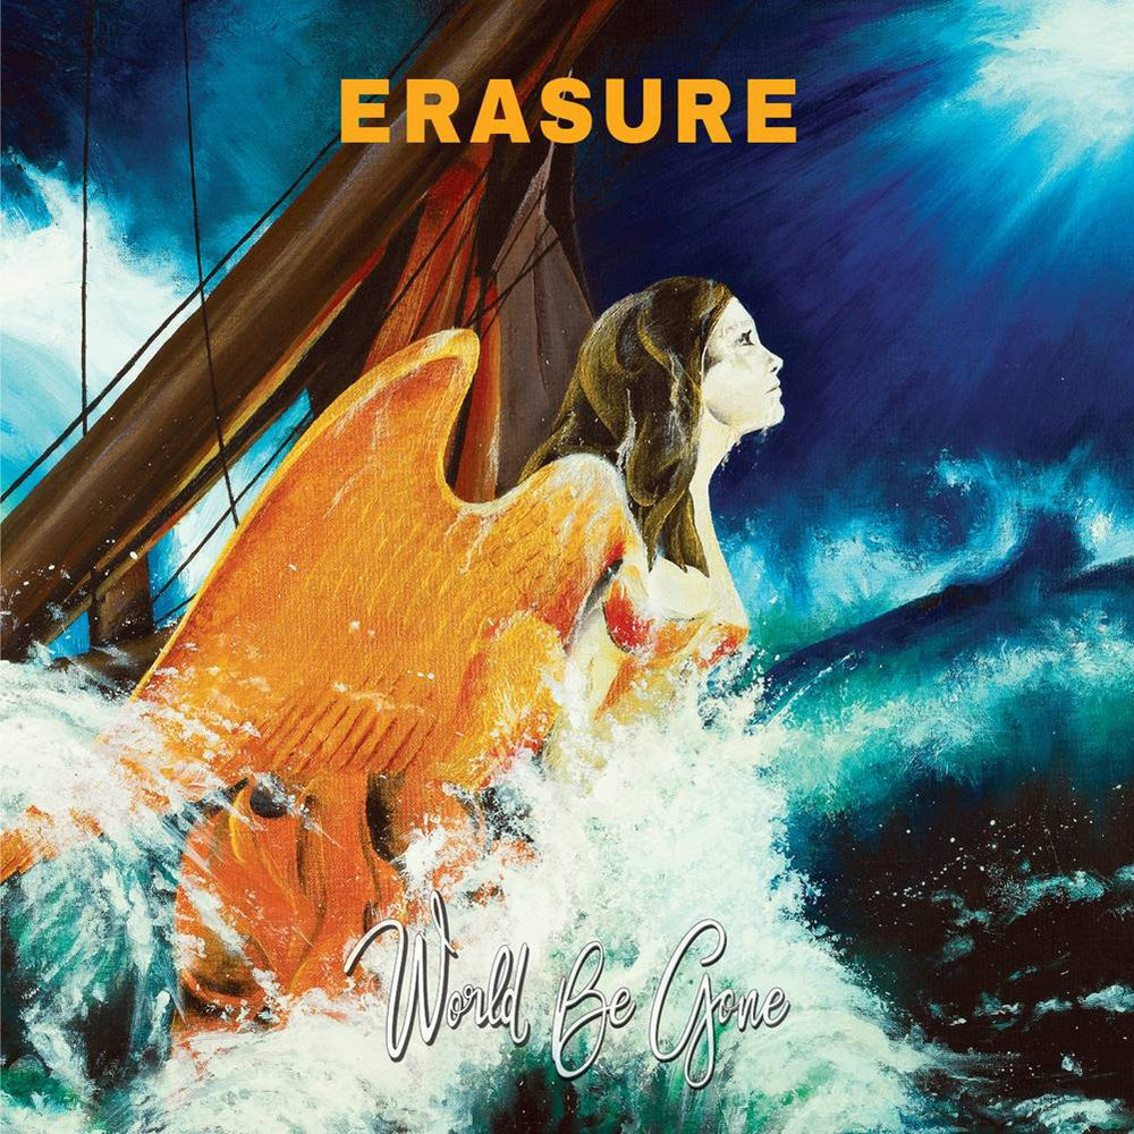 Metroland remixes Erasure for deluxe 2CD version'World Be Gone' - limited to just 500 copies